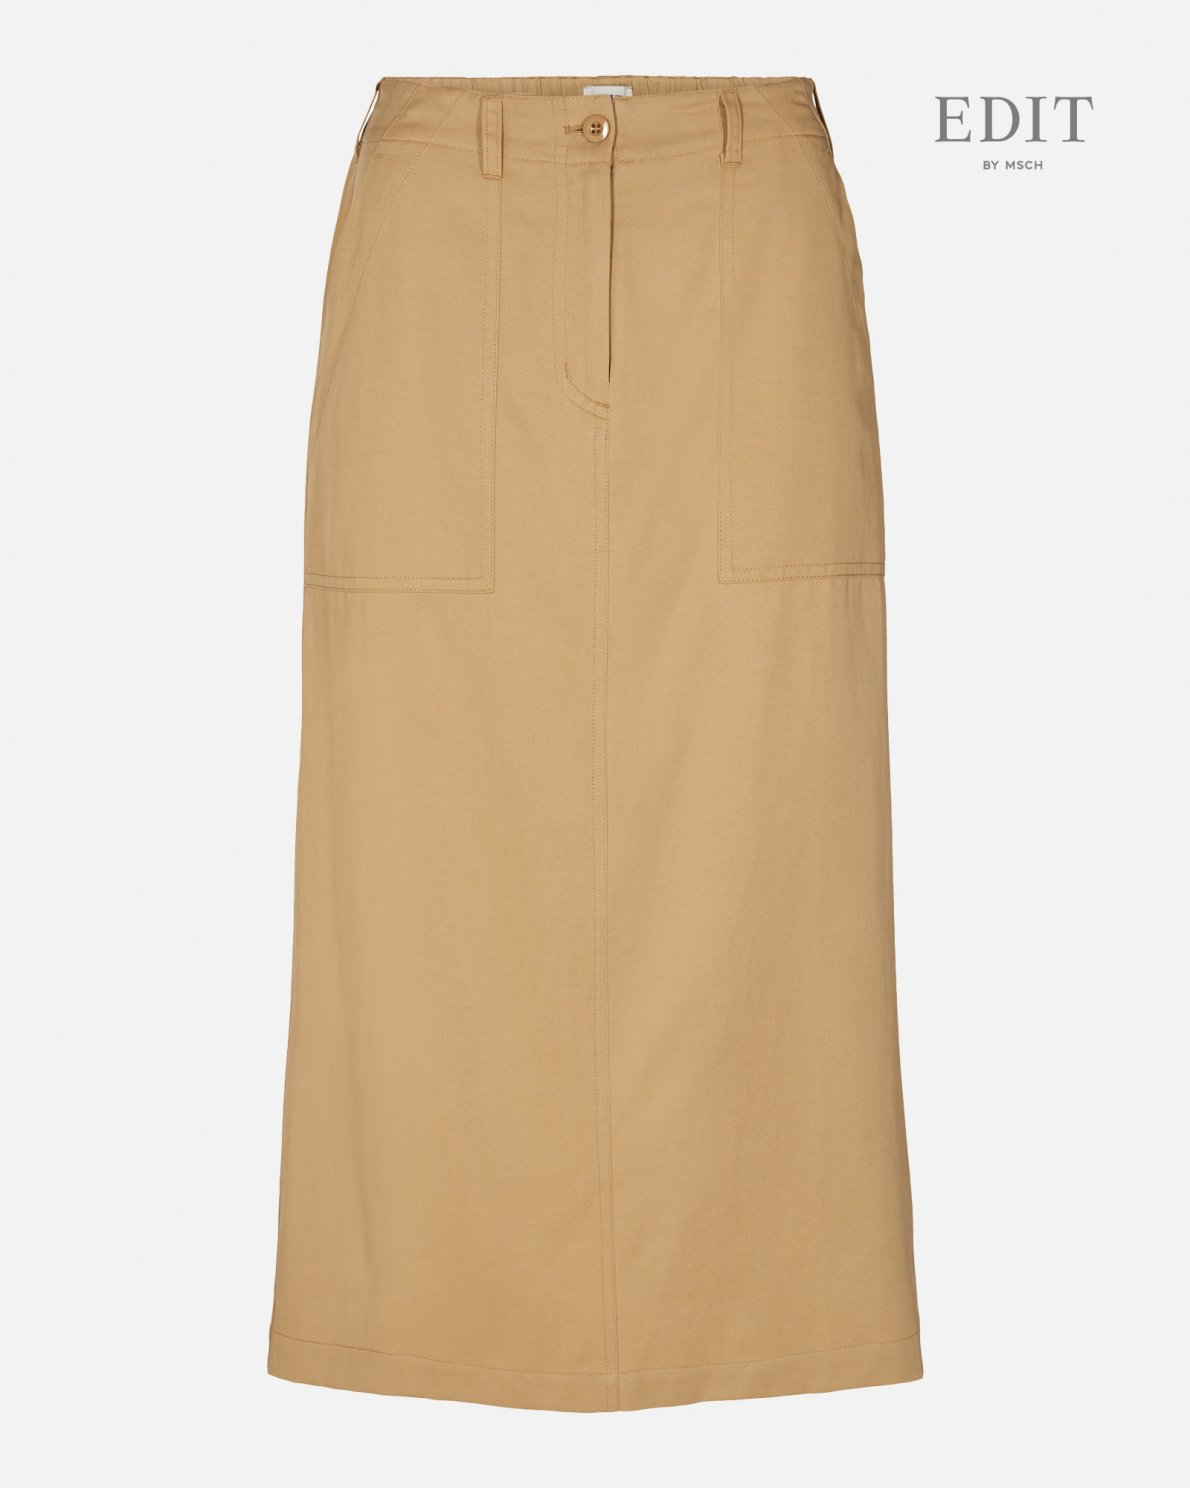 Moss Copenhagen OUTLET Clothing EDIT BY MSCH Gilli Skirt